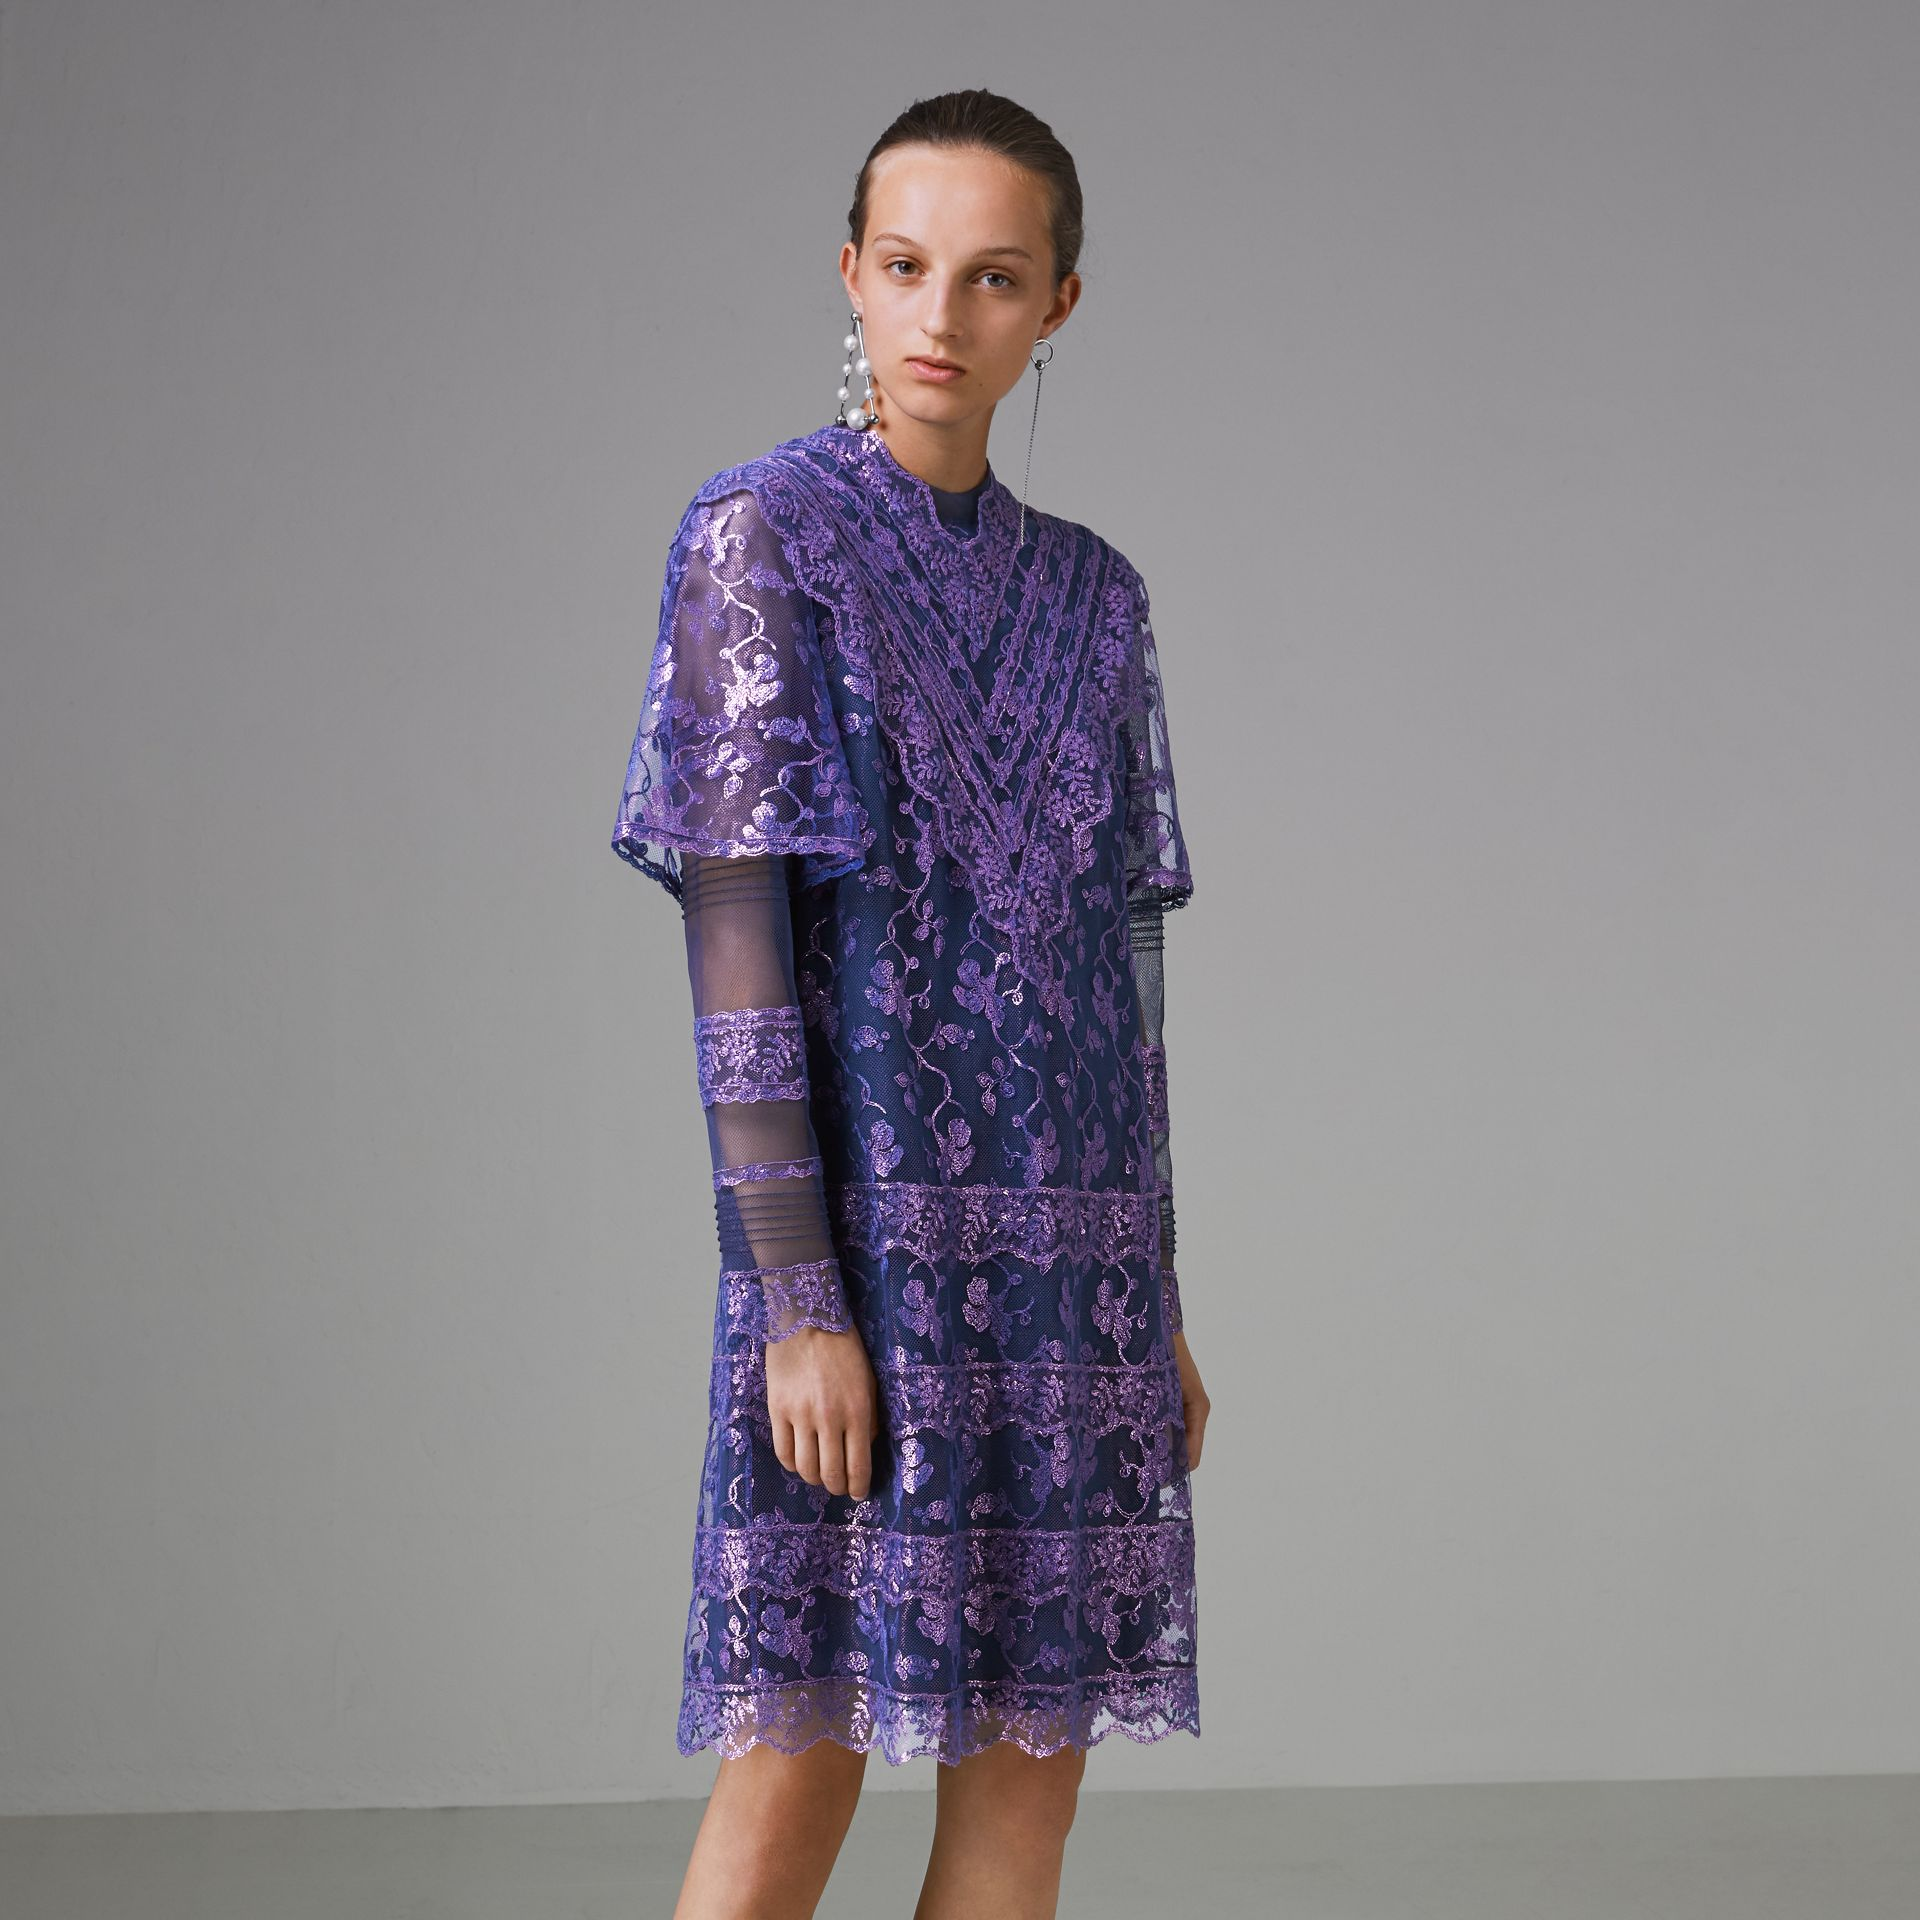 Laminated Lace Cape Sleeve Dress in Bright Purple - Women | Burberry Canada - gallery image 5